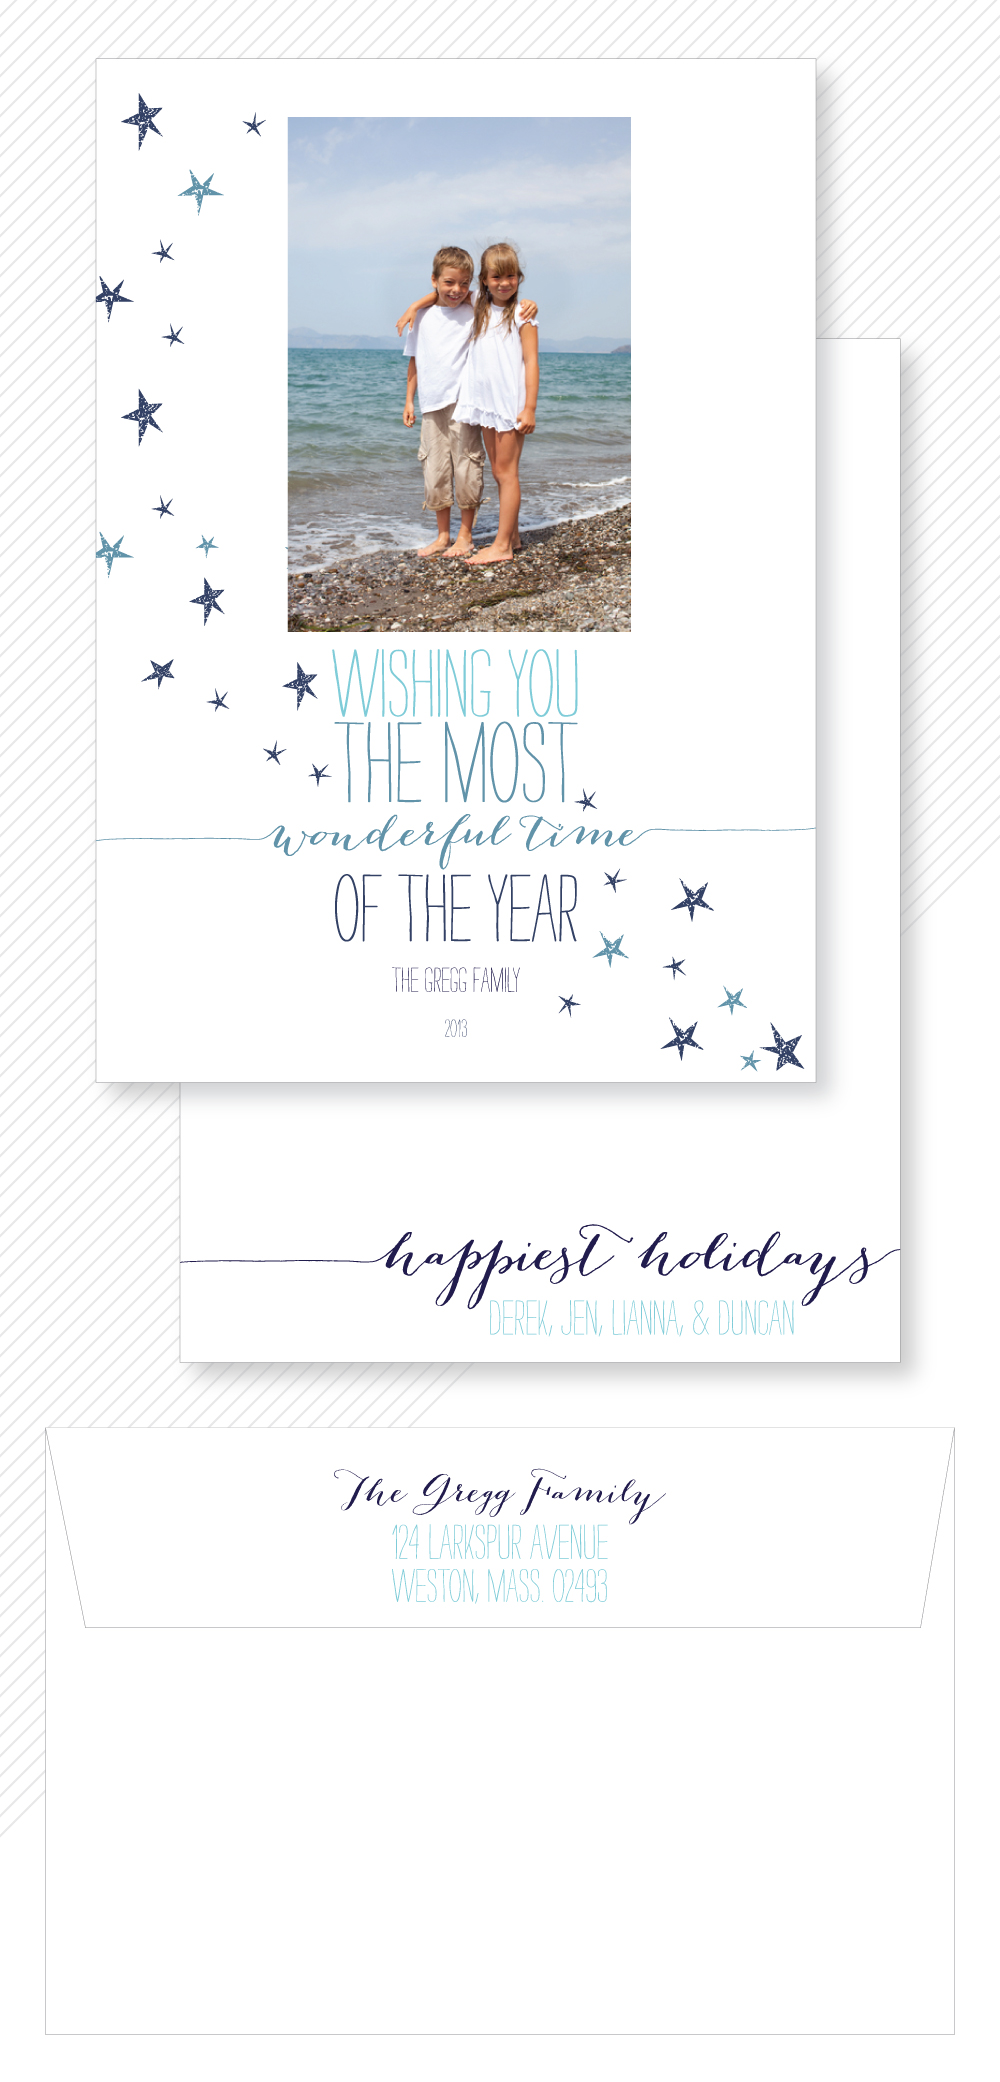 finefamily-greggfamily-custom-holiday-card-BLOGFLICKR.jpg